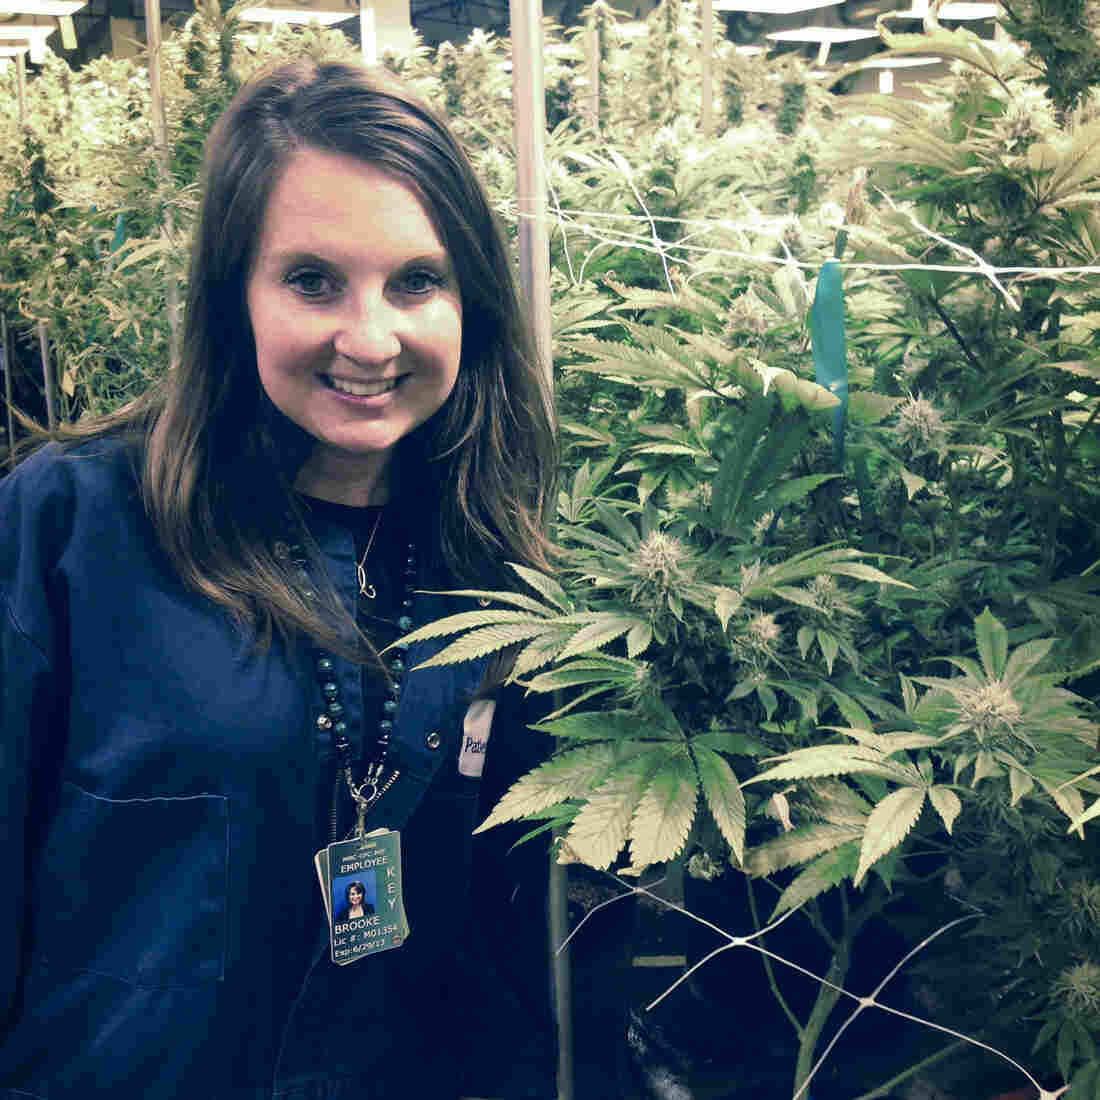 Colorado's Pot Industry Looks To Move Past Stereotypes